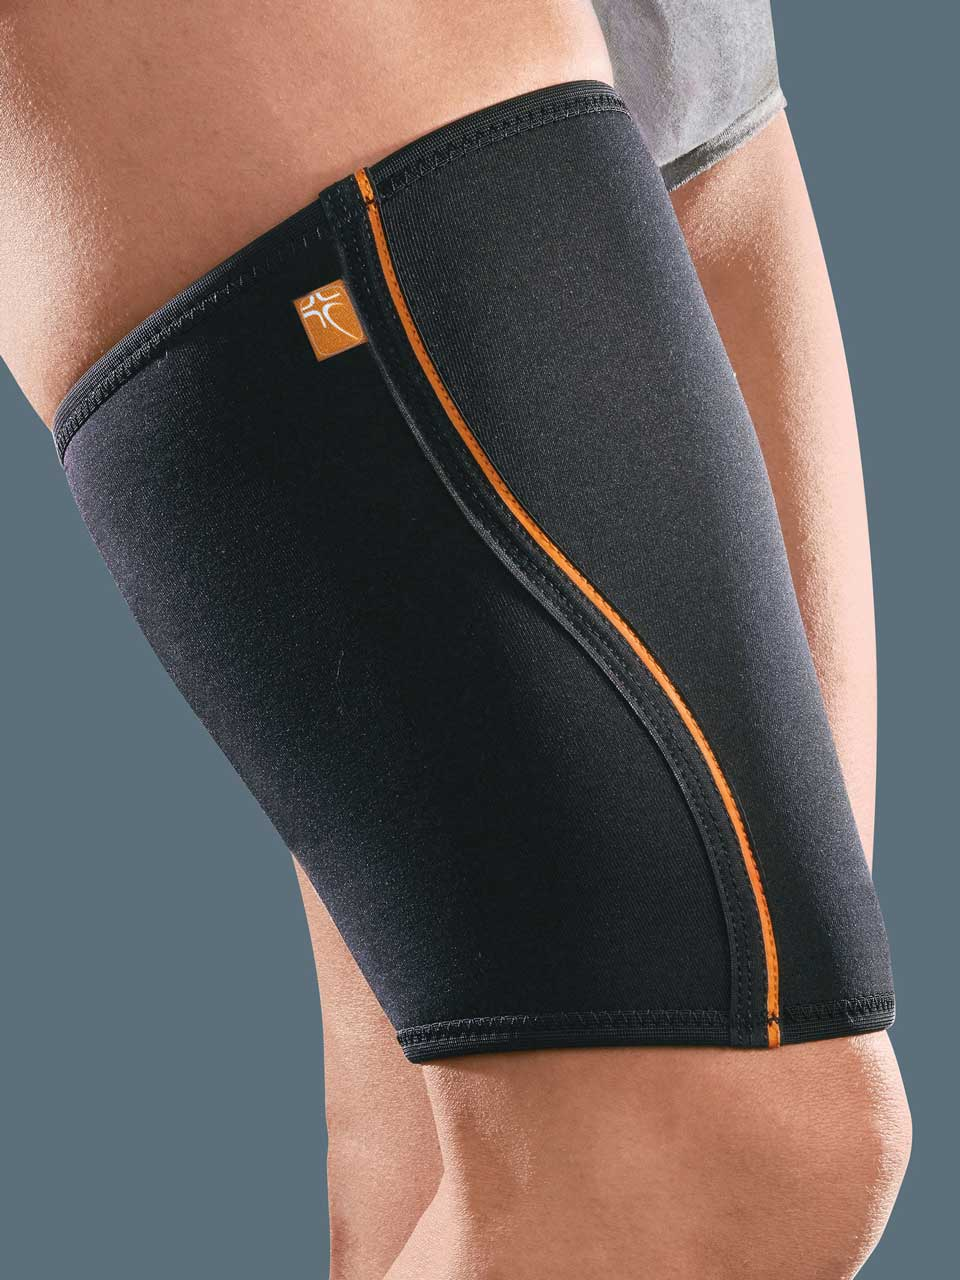 MIOFIT 33 - Thigh support